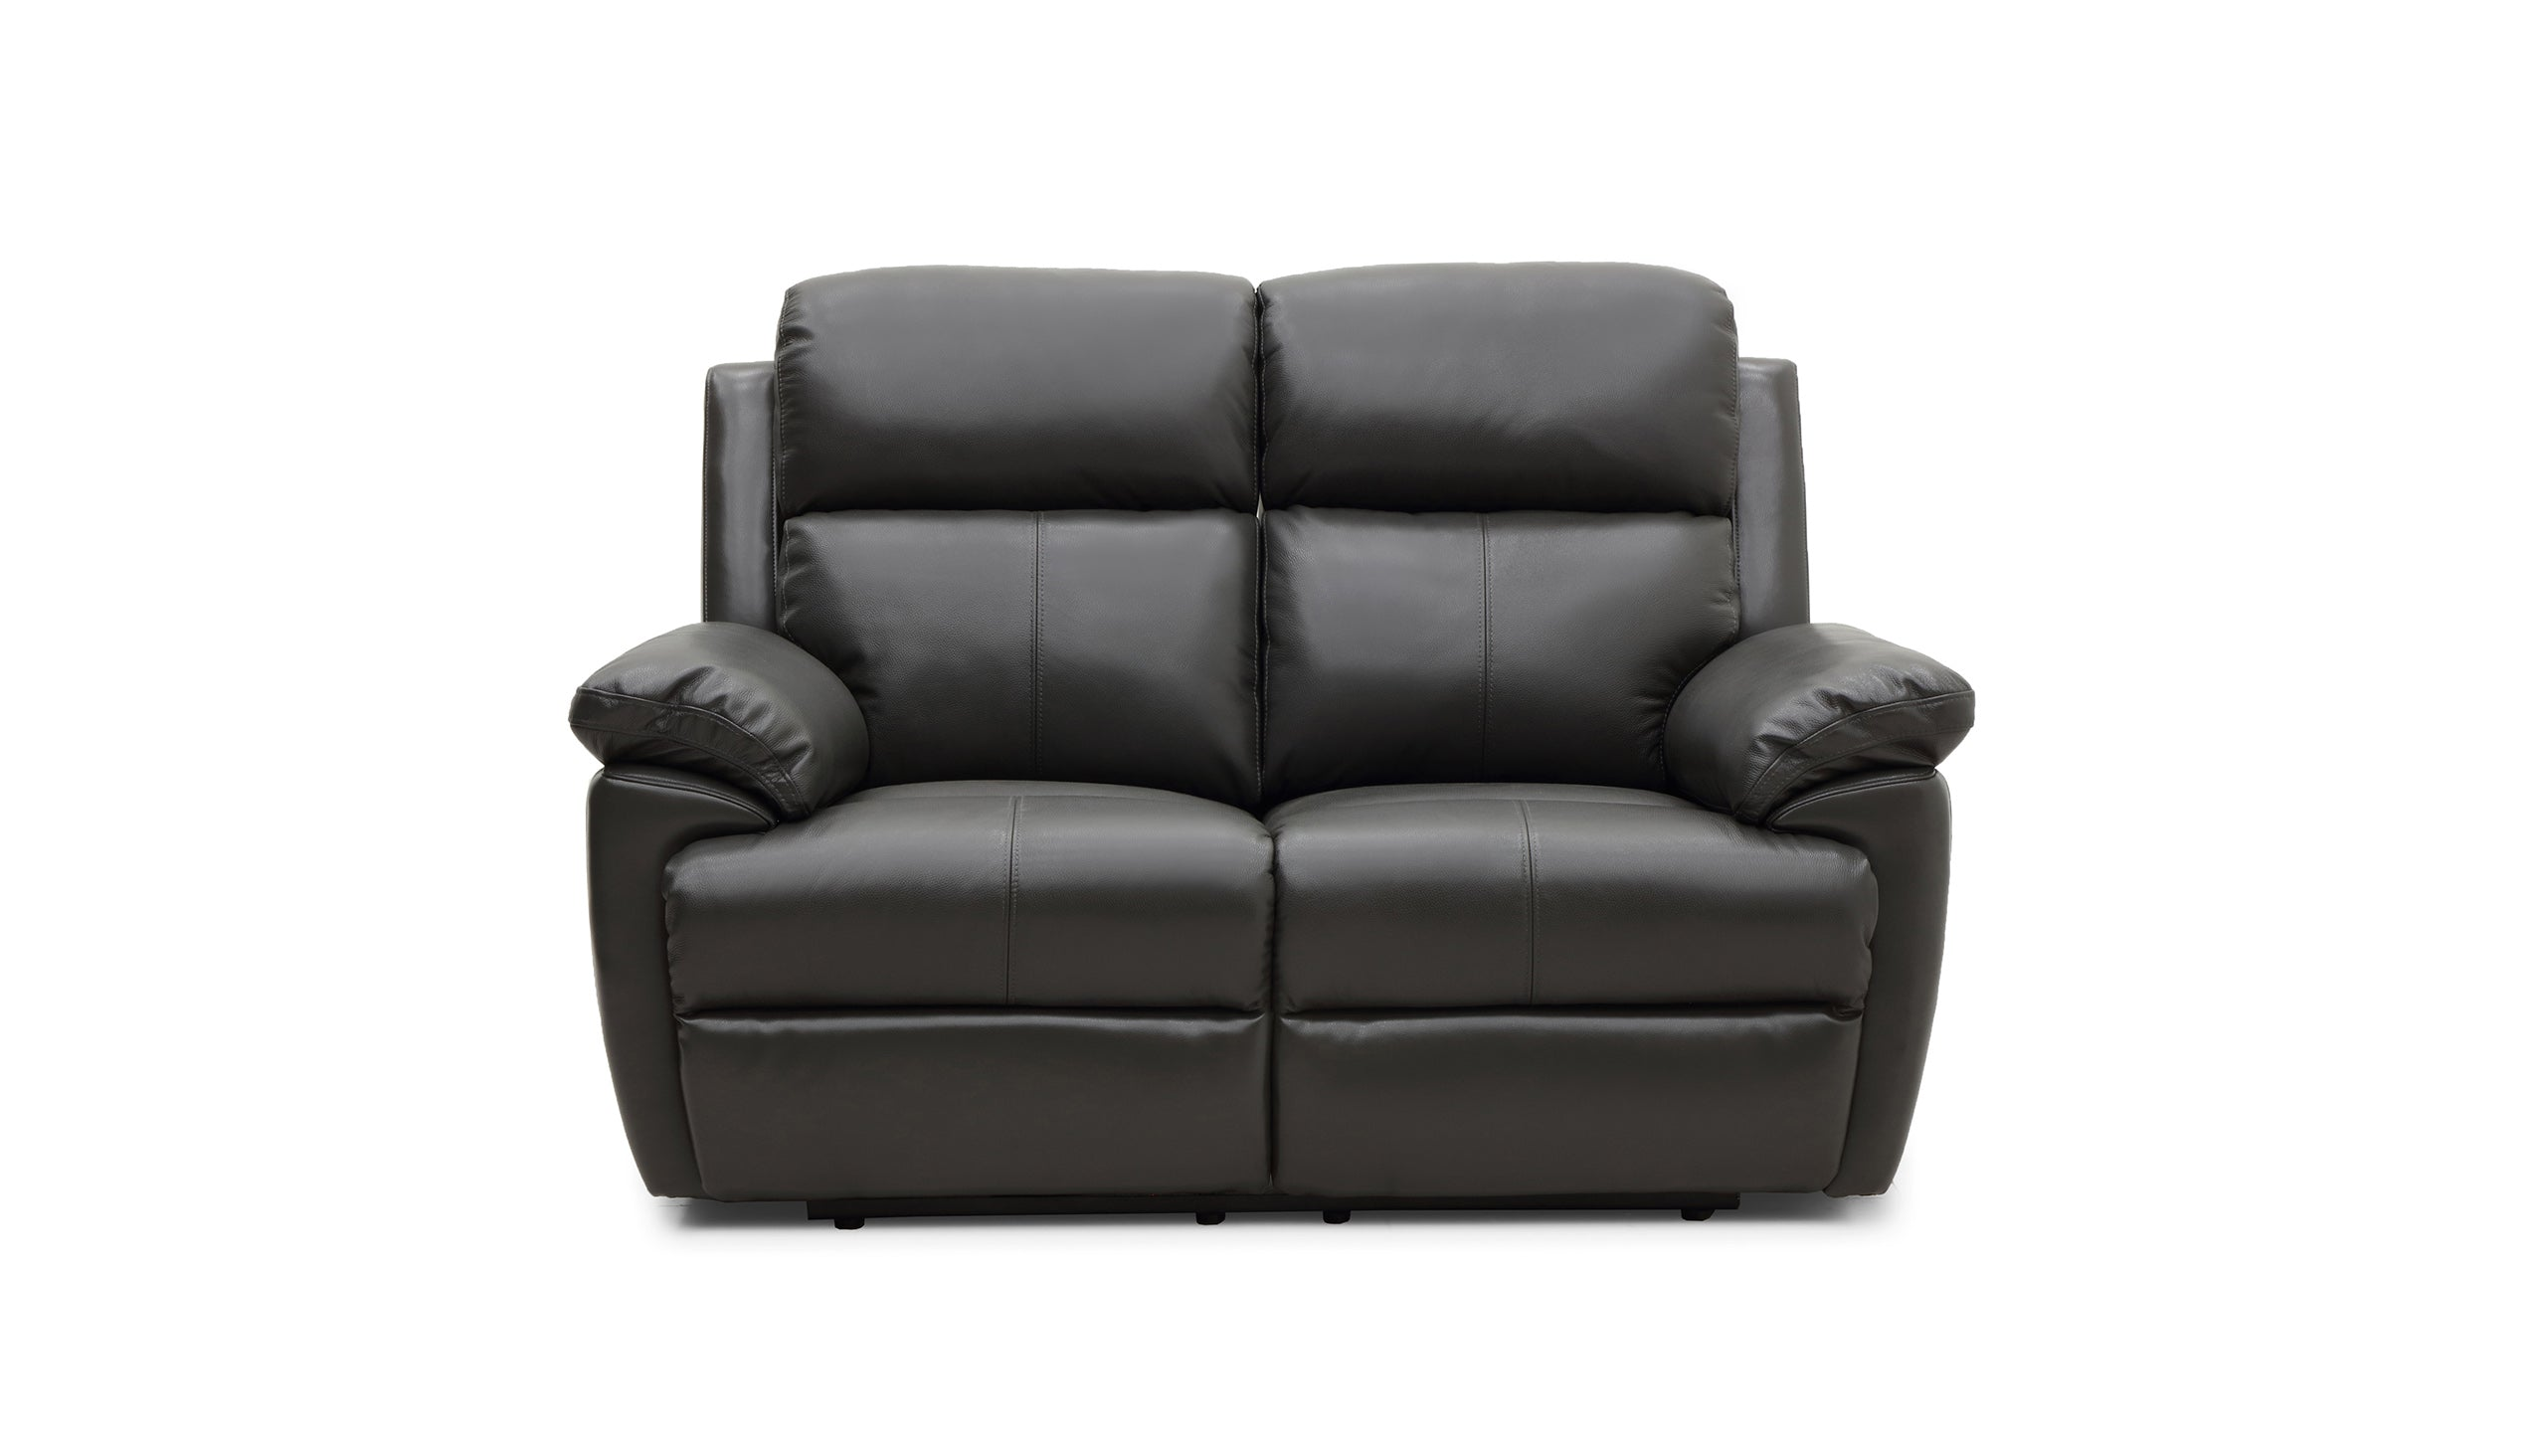 Blair 2 Seater Manual Recliner Sofa in Leather